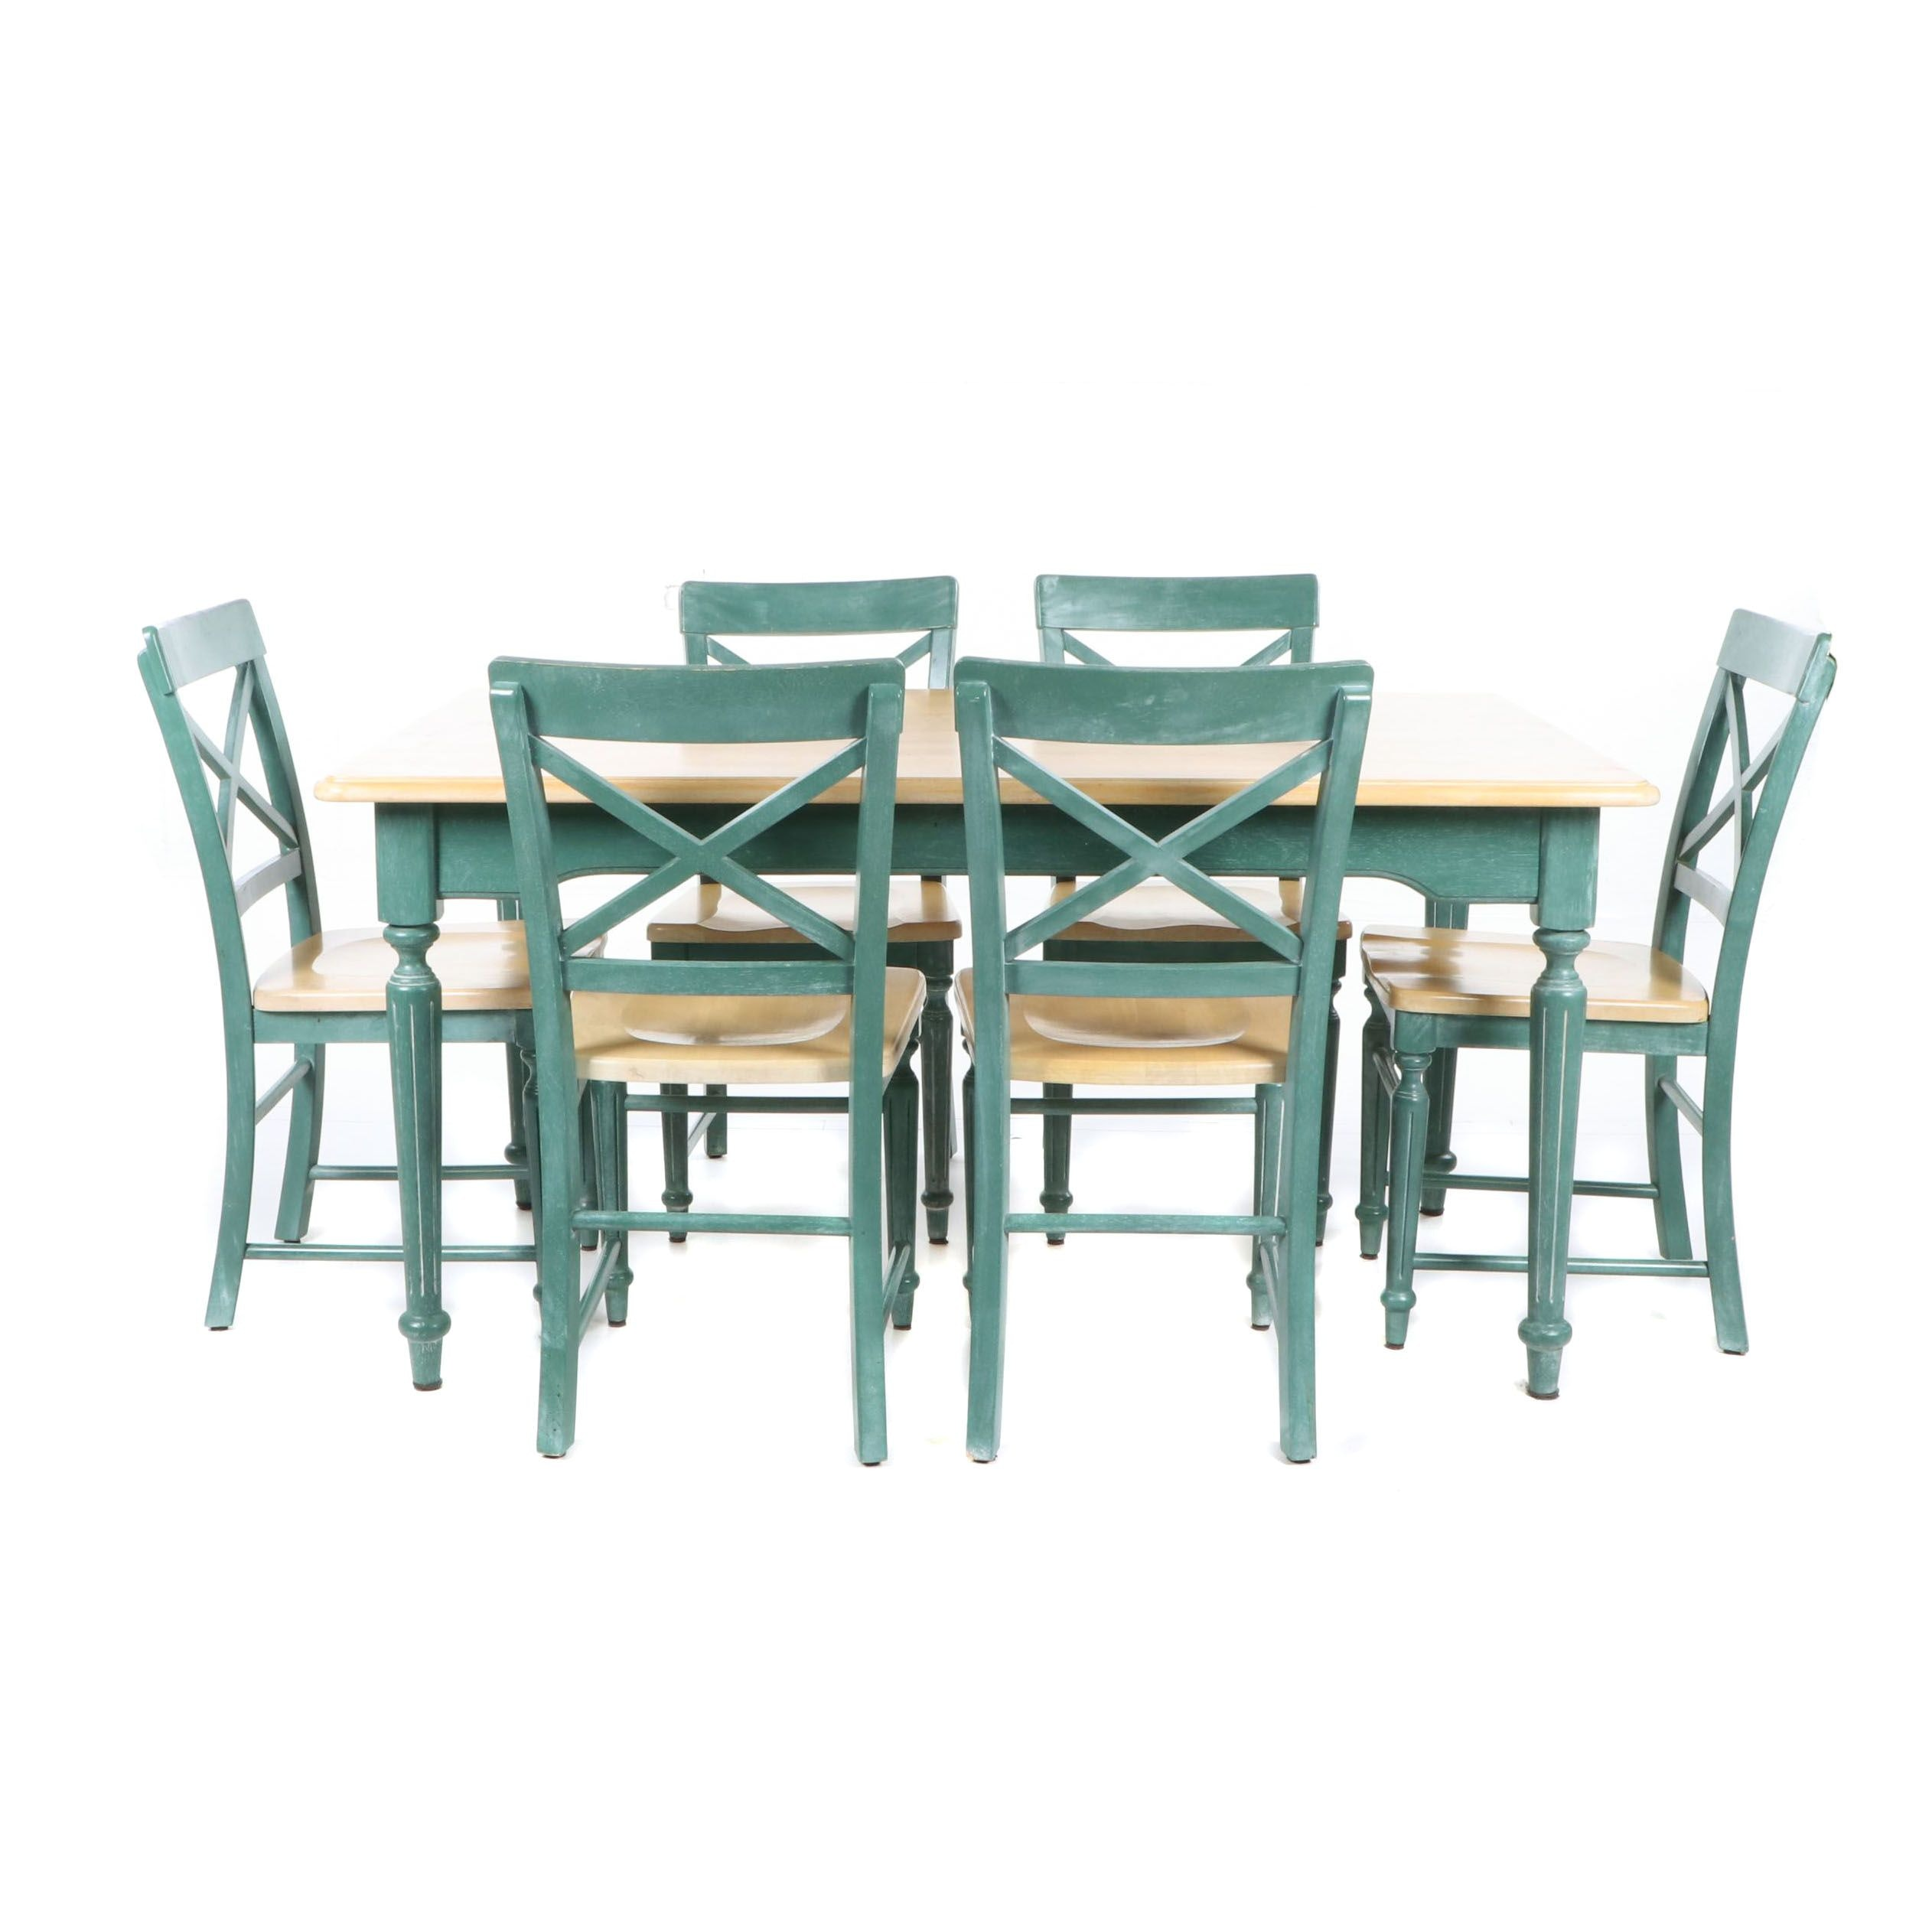 Painted Wood Dining Table and Six Chairs, 21st Century